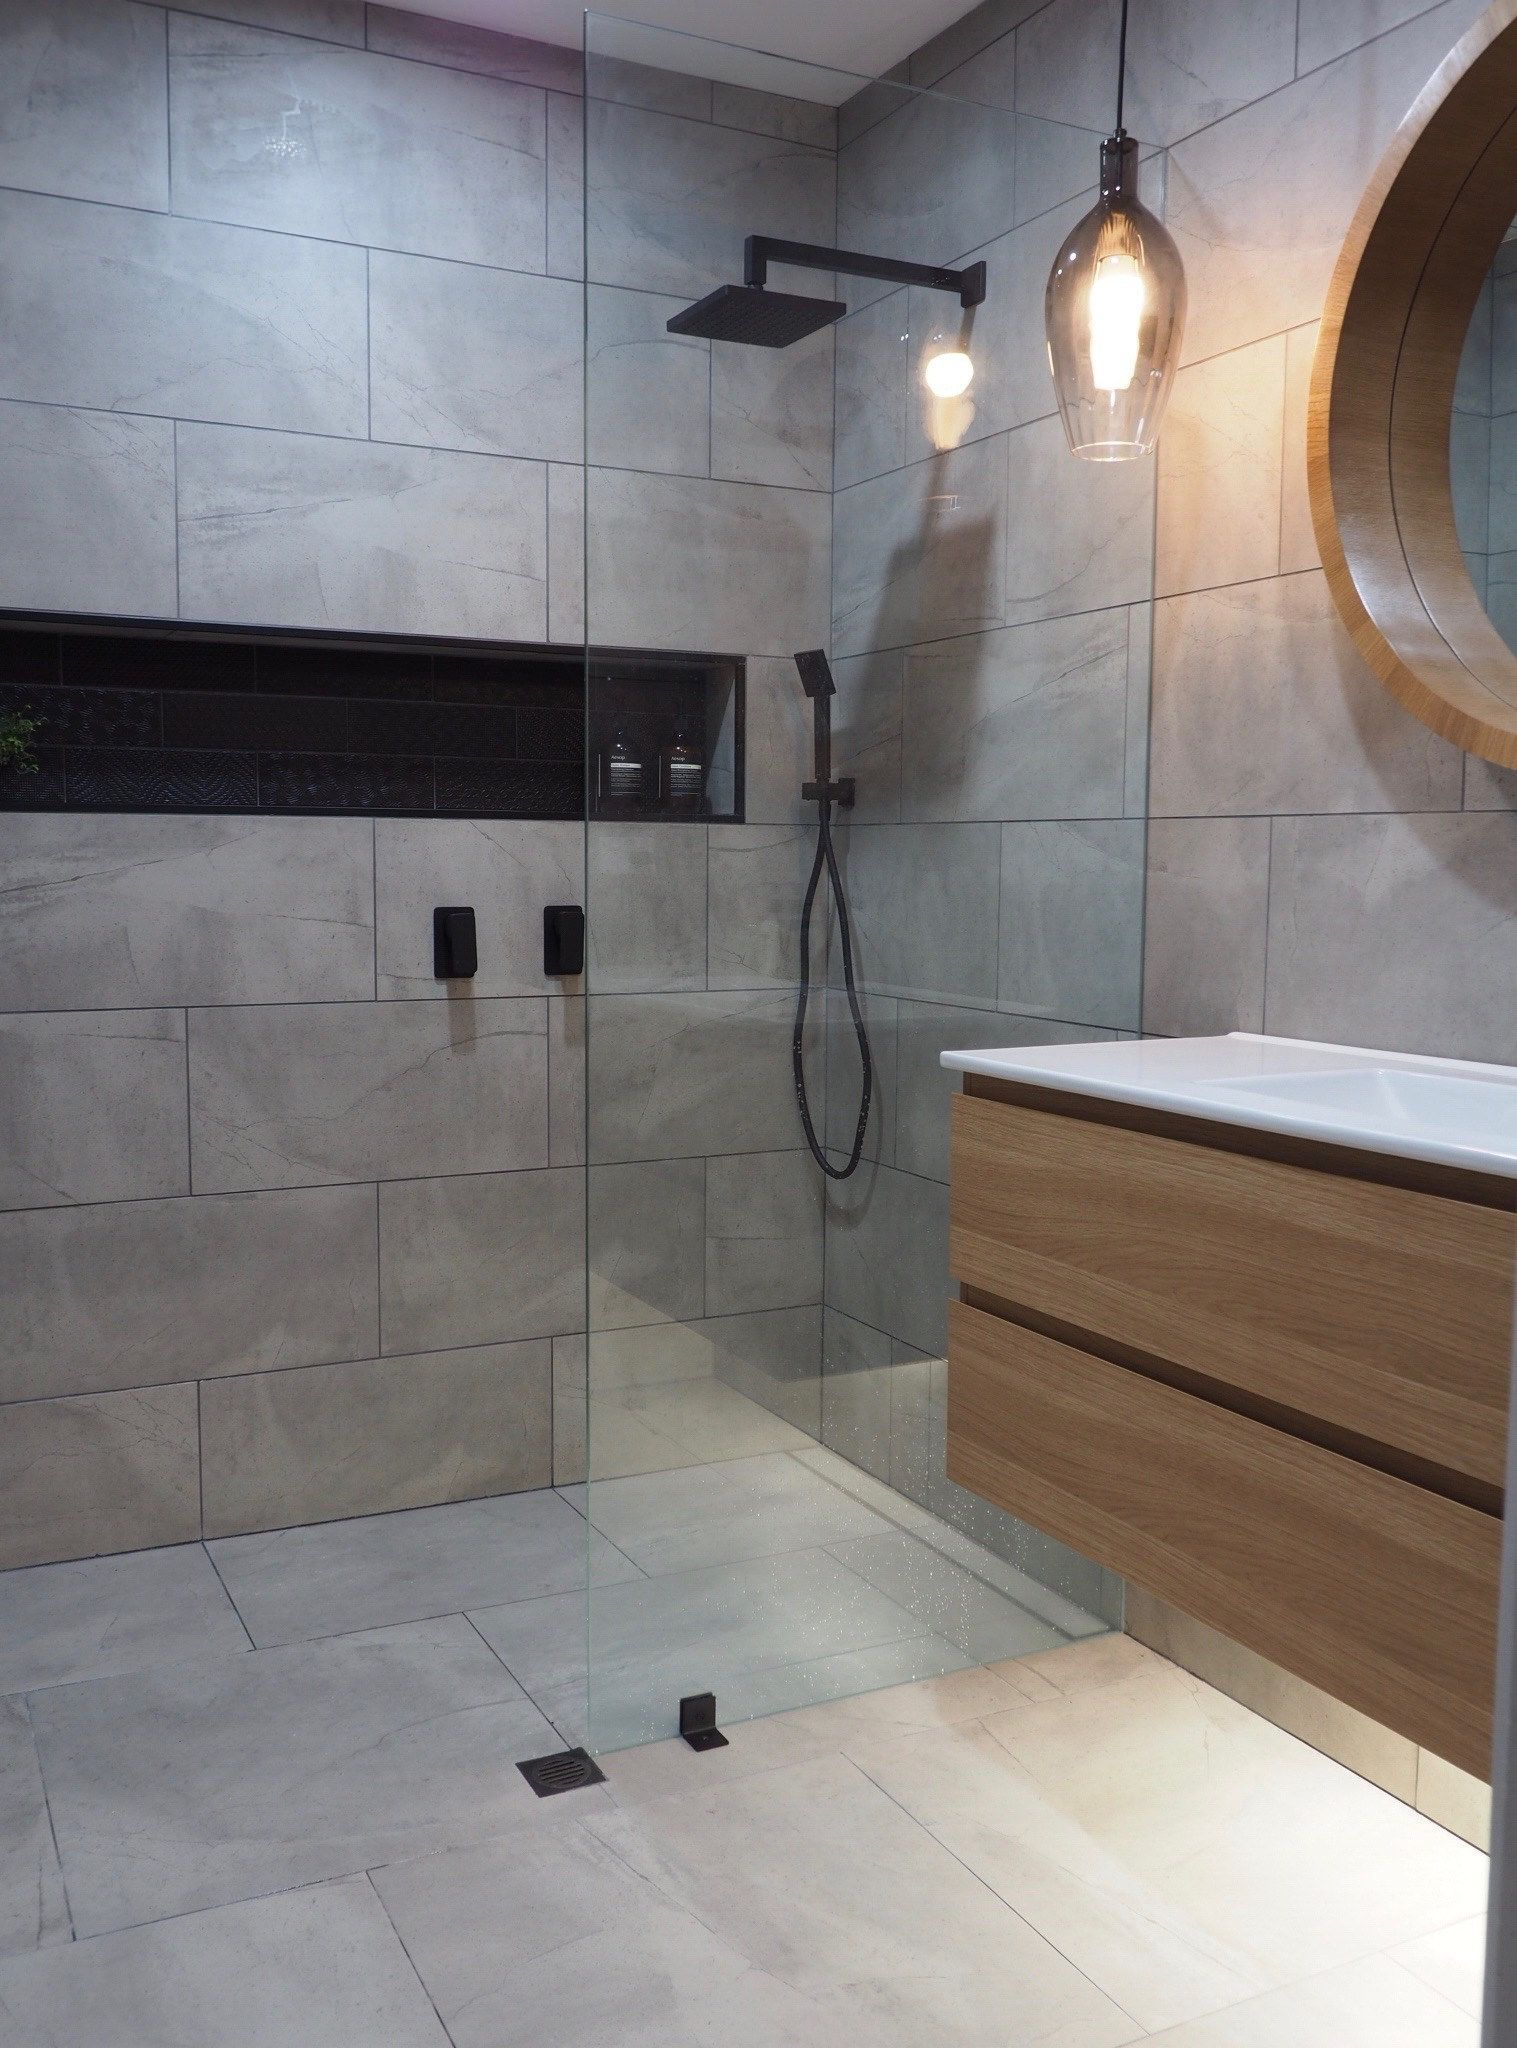 Check Out The Bathroom Lighting Ideas That We Prepared For You Ready Set Go Www Bathroom Inspiration Modern Bathroom Inspiration Decor Bathrooms Remodel